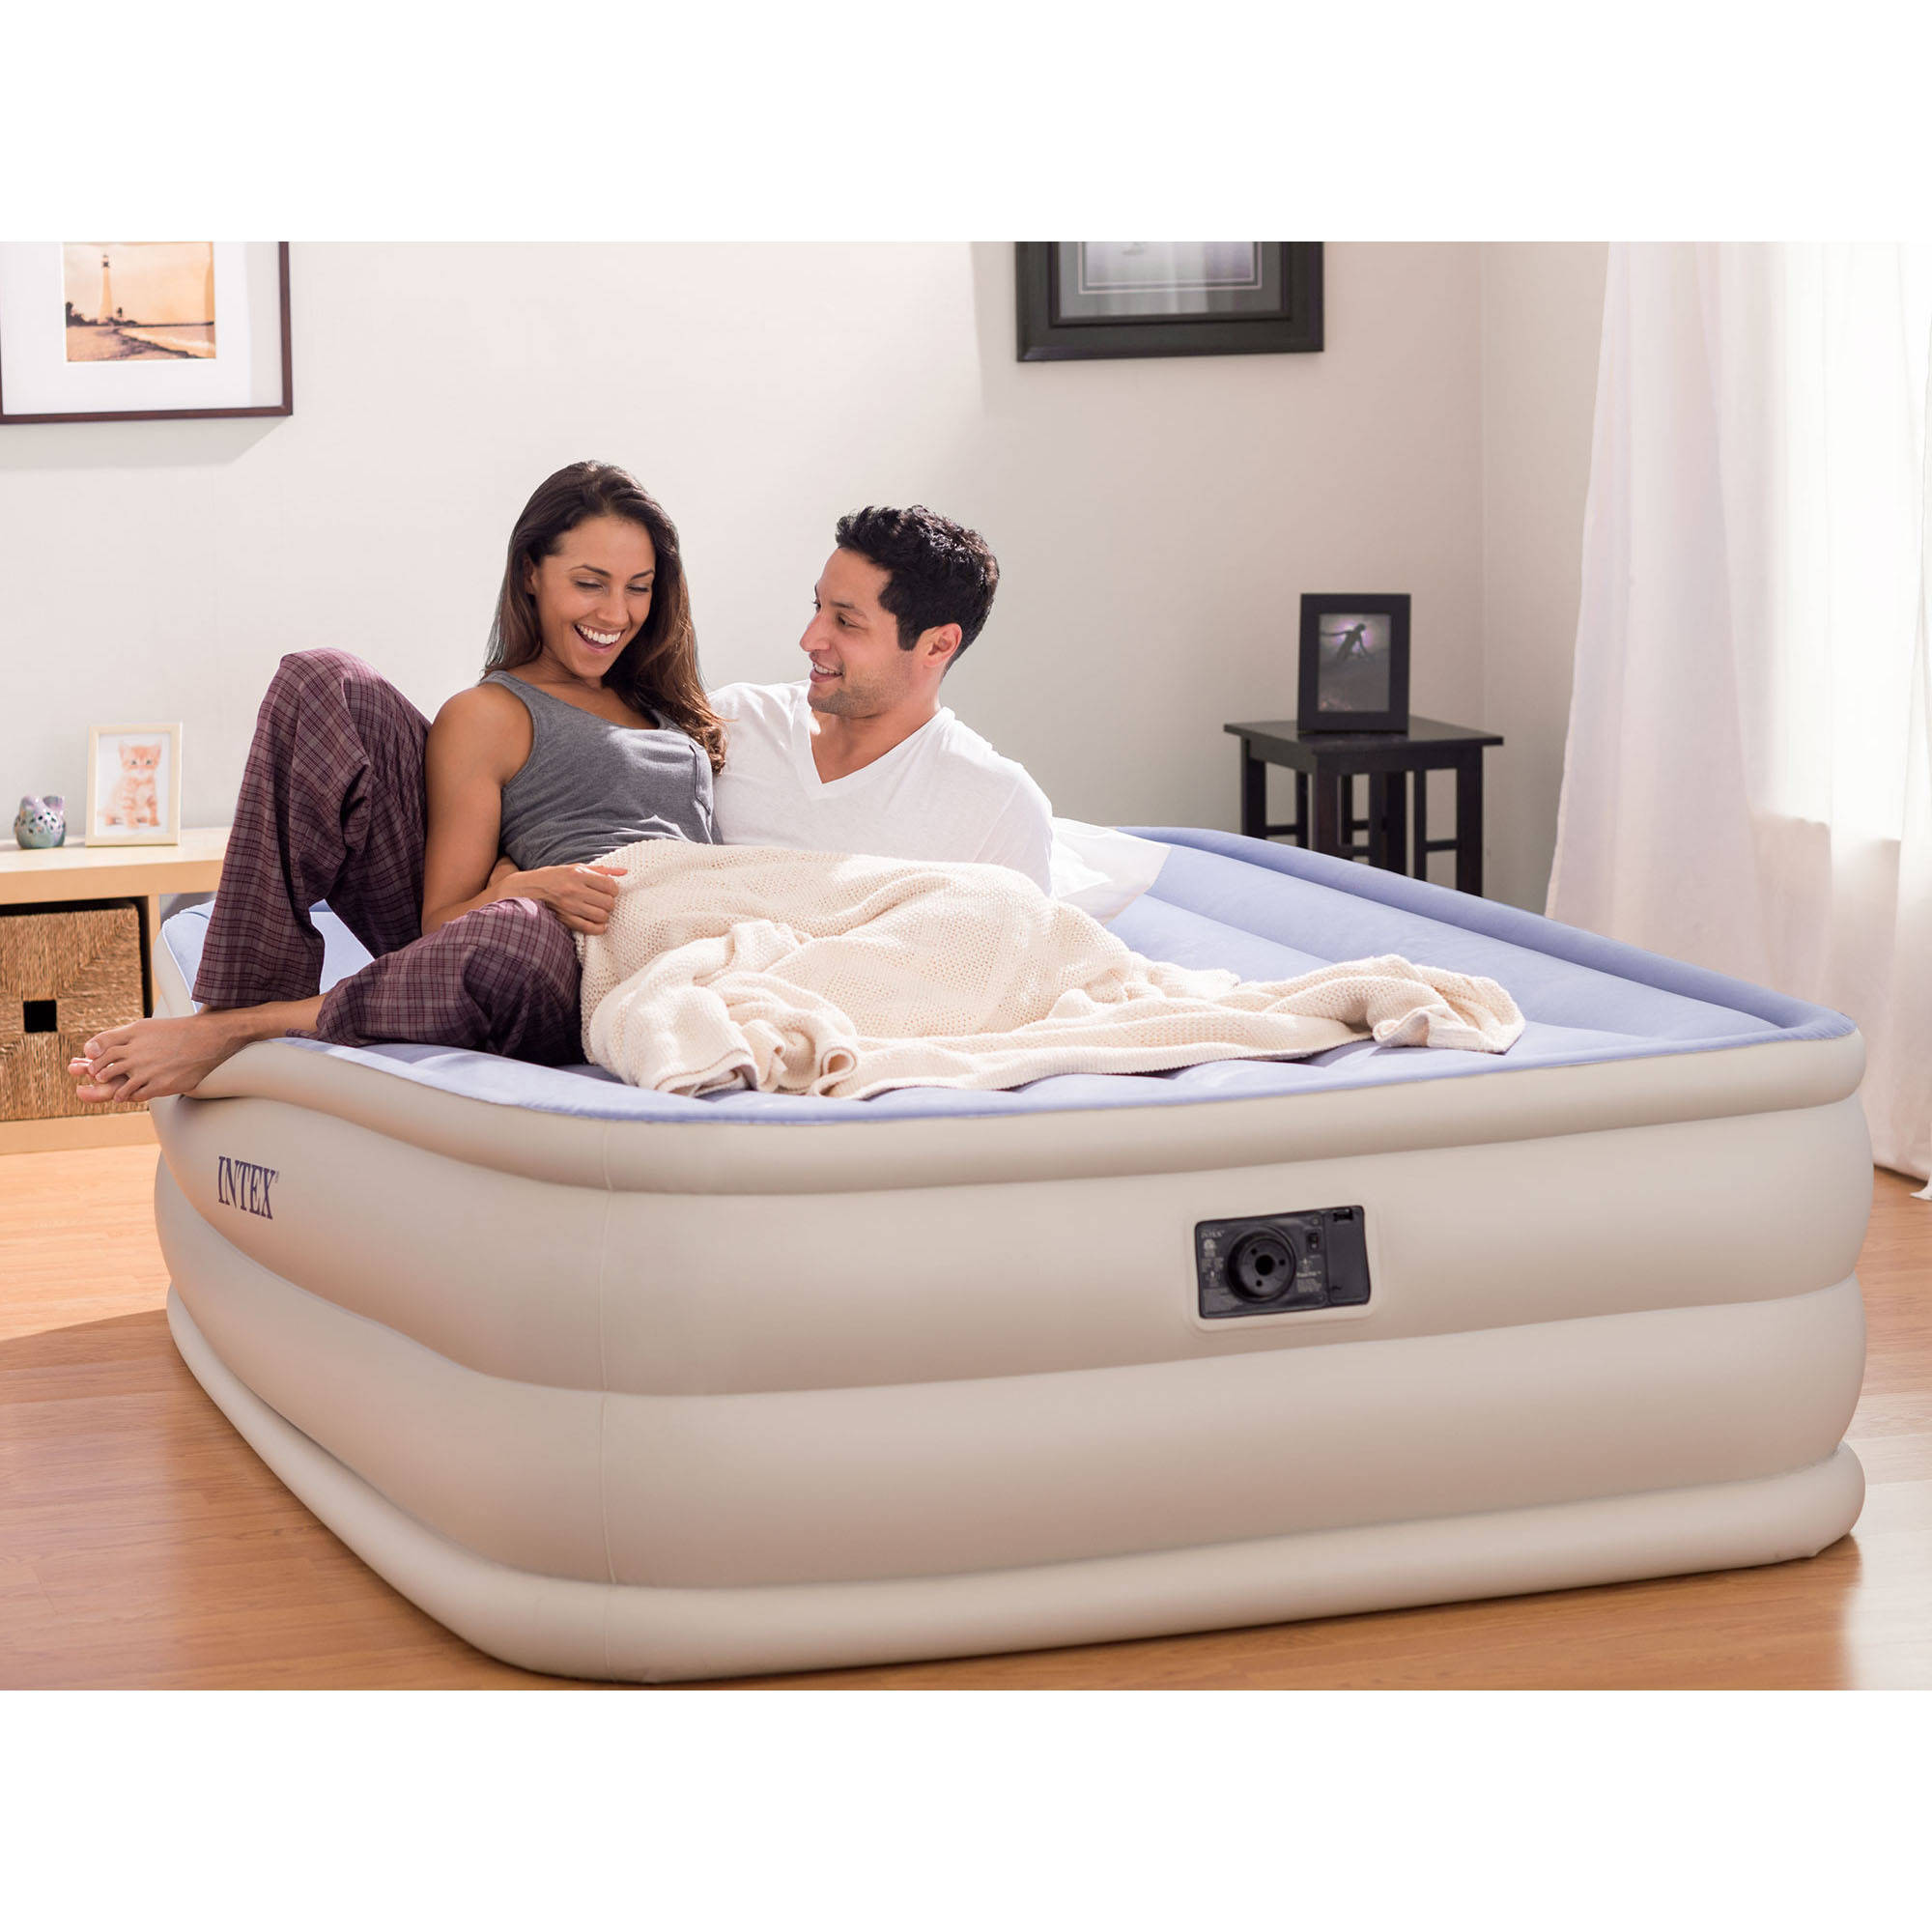 """Intex Queen 22"""" Raised Downy Airbed Mattress with Built-In Electric Pump (New Color-Blue/Tan)"""